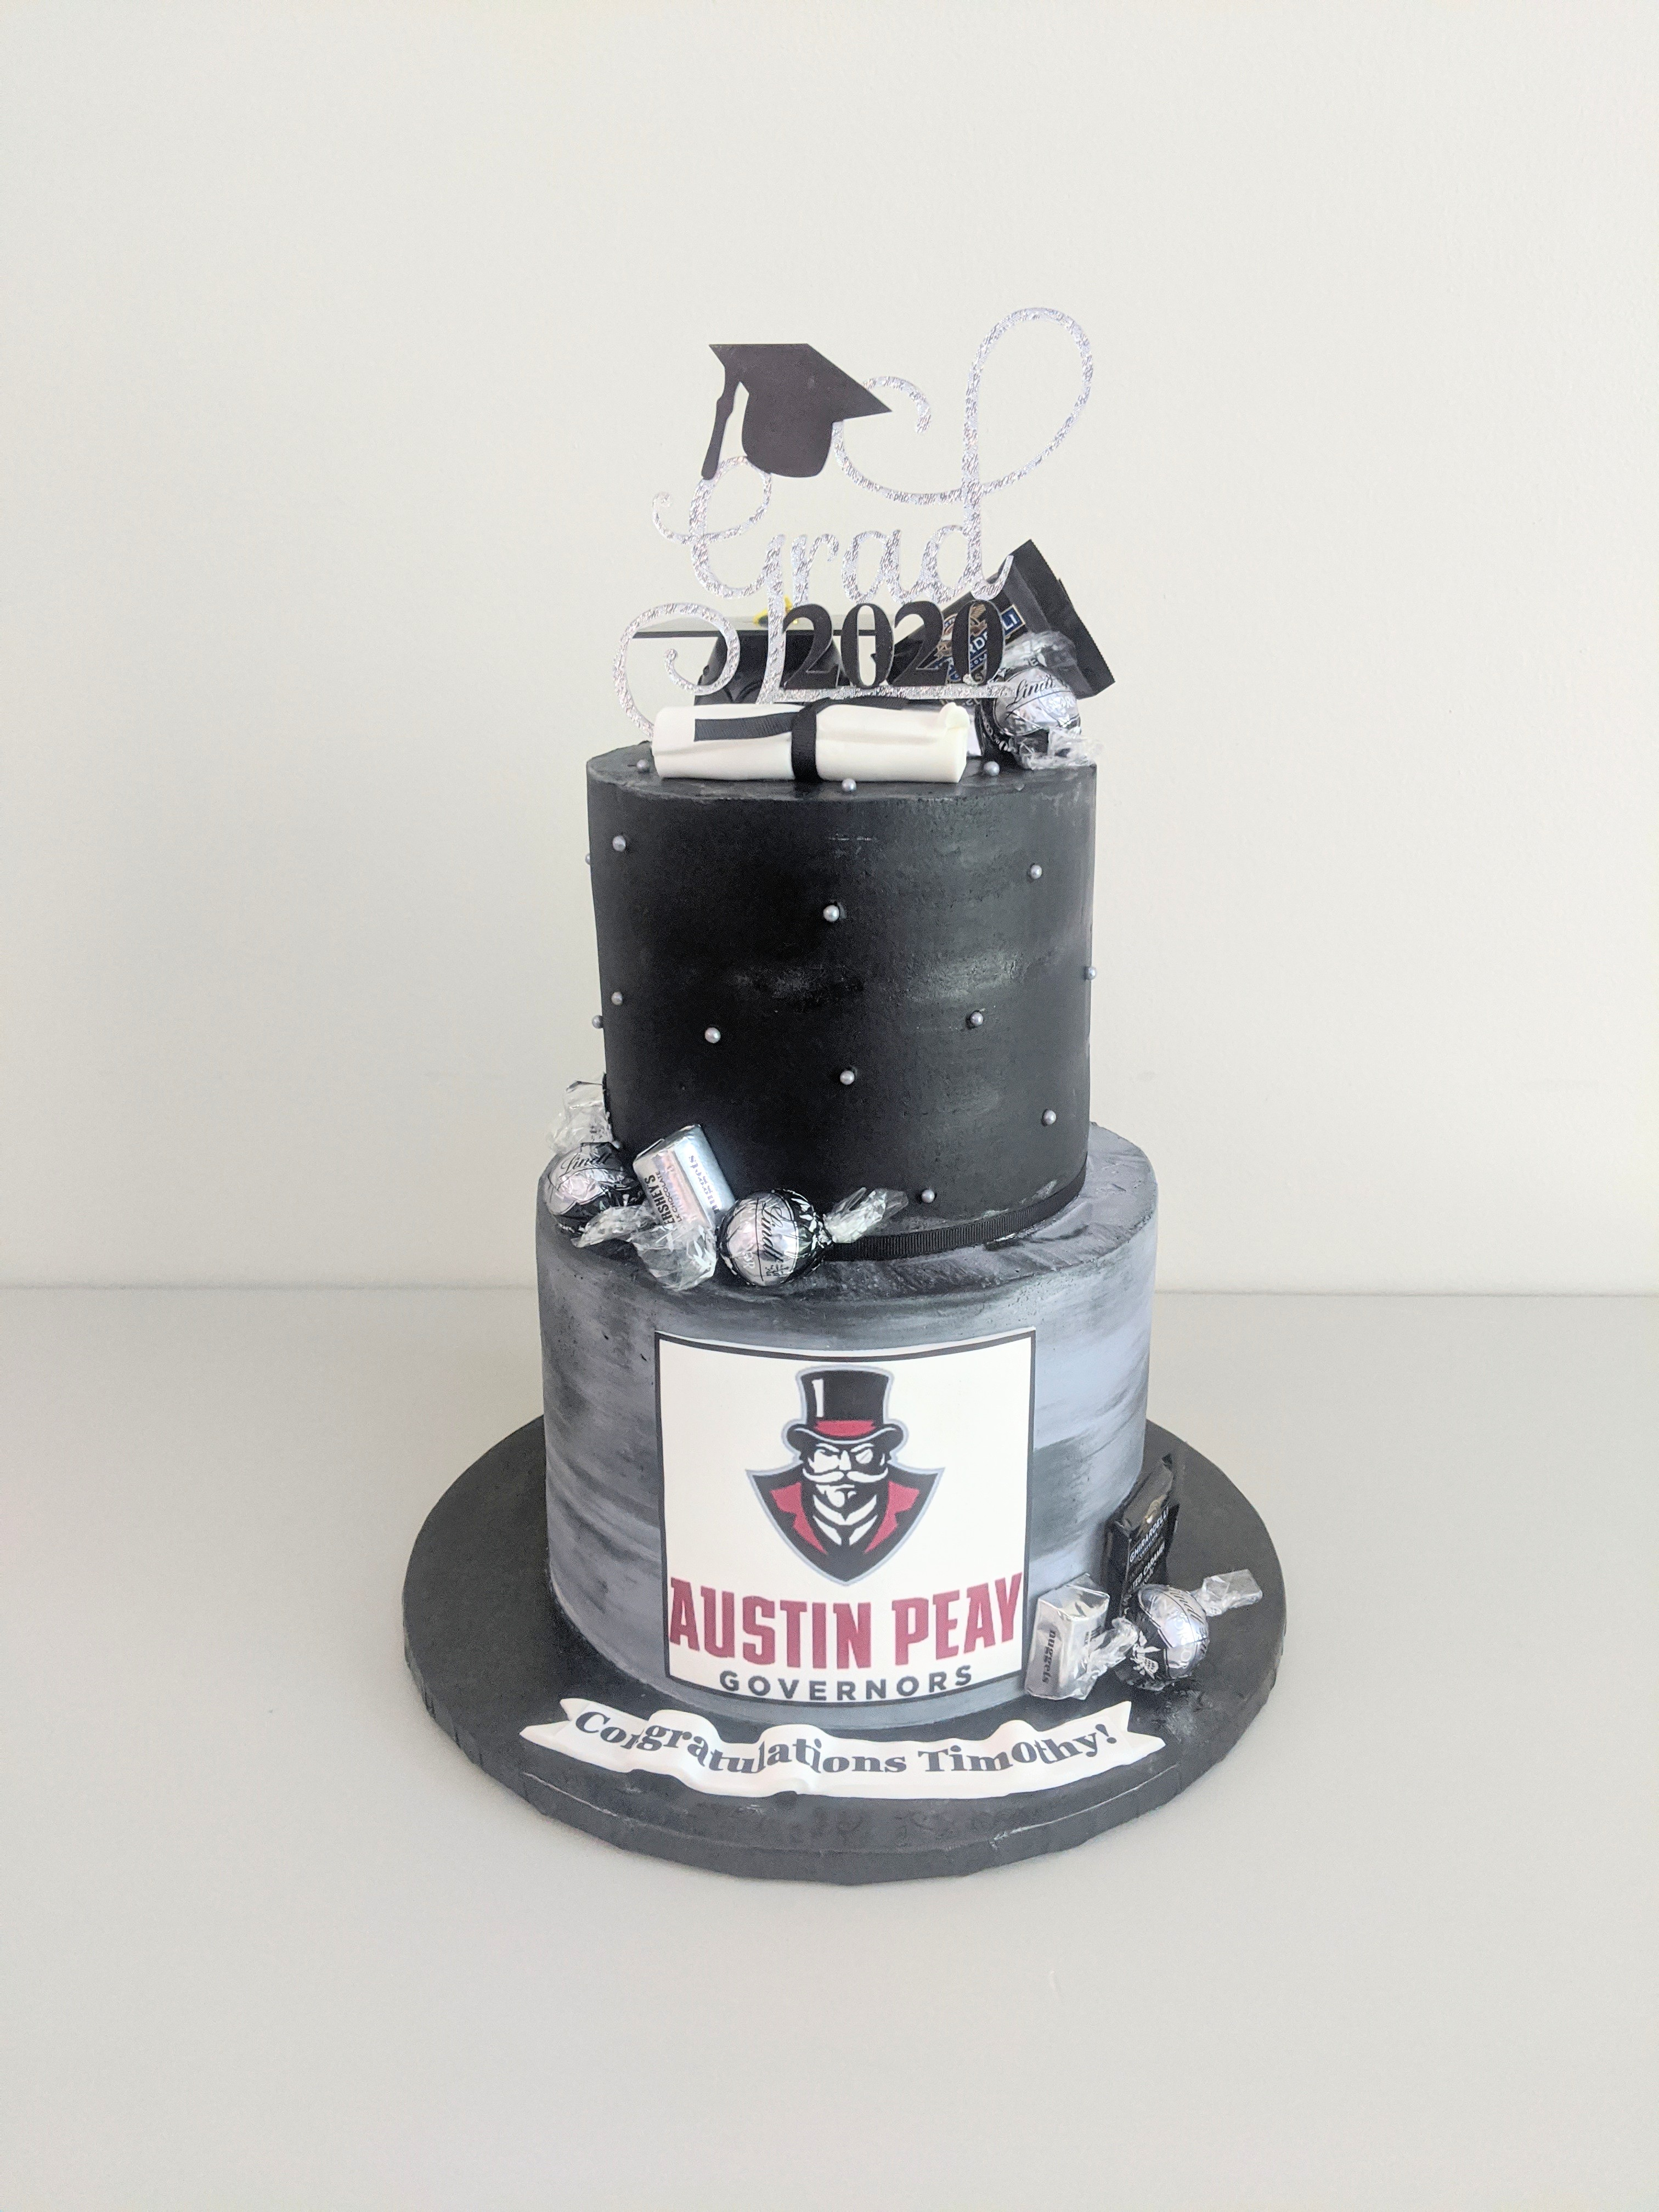 Austin Peay Univ Graduation Cake